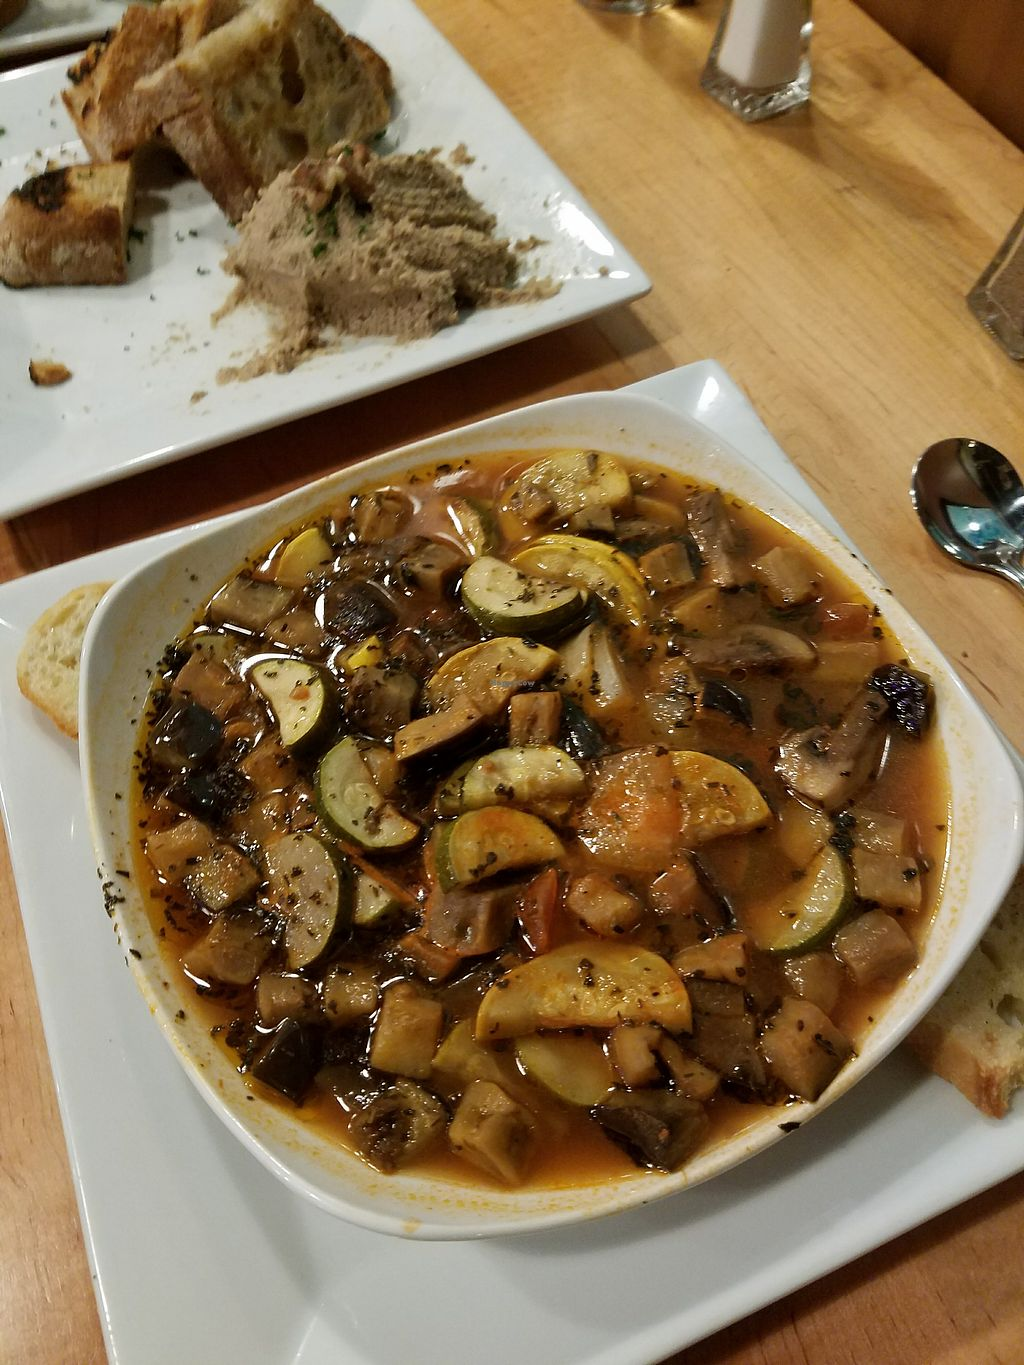 """Photo of Feed the World Cafe  by <a href=""""/members/profile/MerryRose"""">MerryRose</a> <br/>vegan ratatouille <br/> December 12, 2017  - <a href='/contact/abuse/image/107152/335083'>Report</a>"""